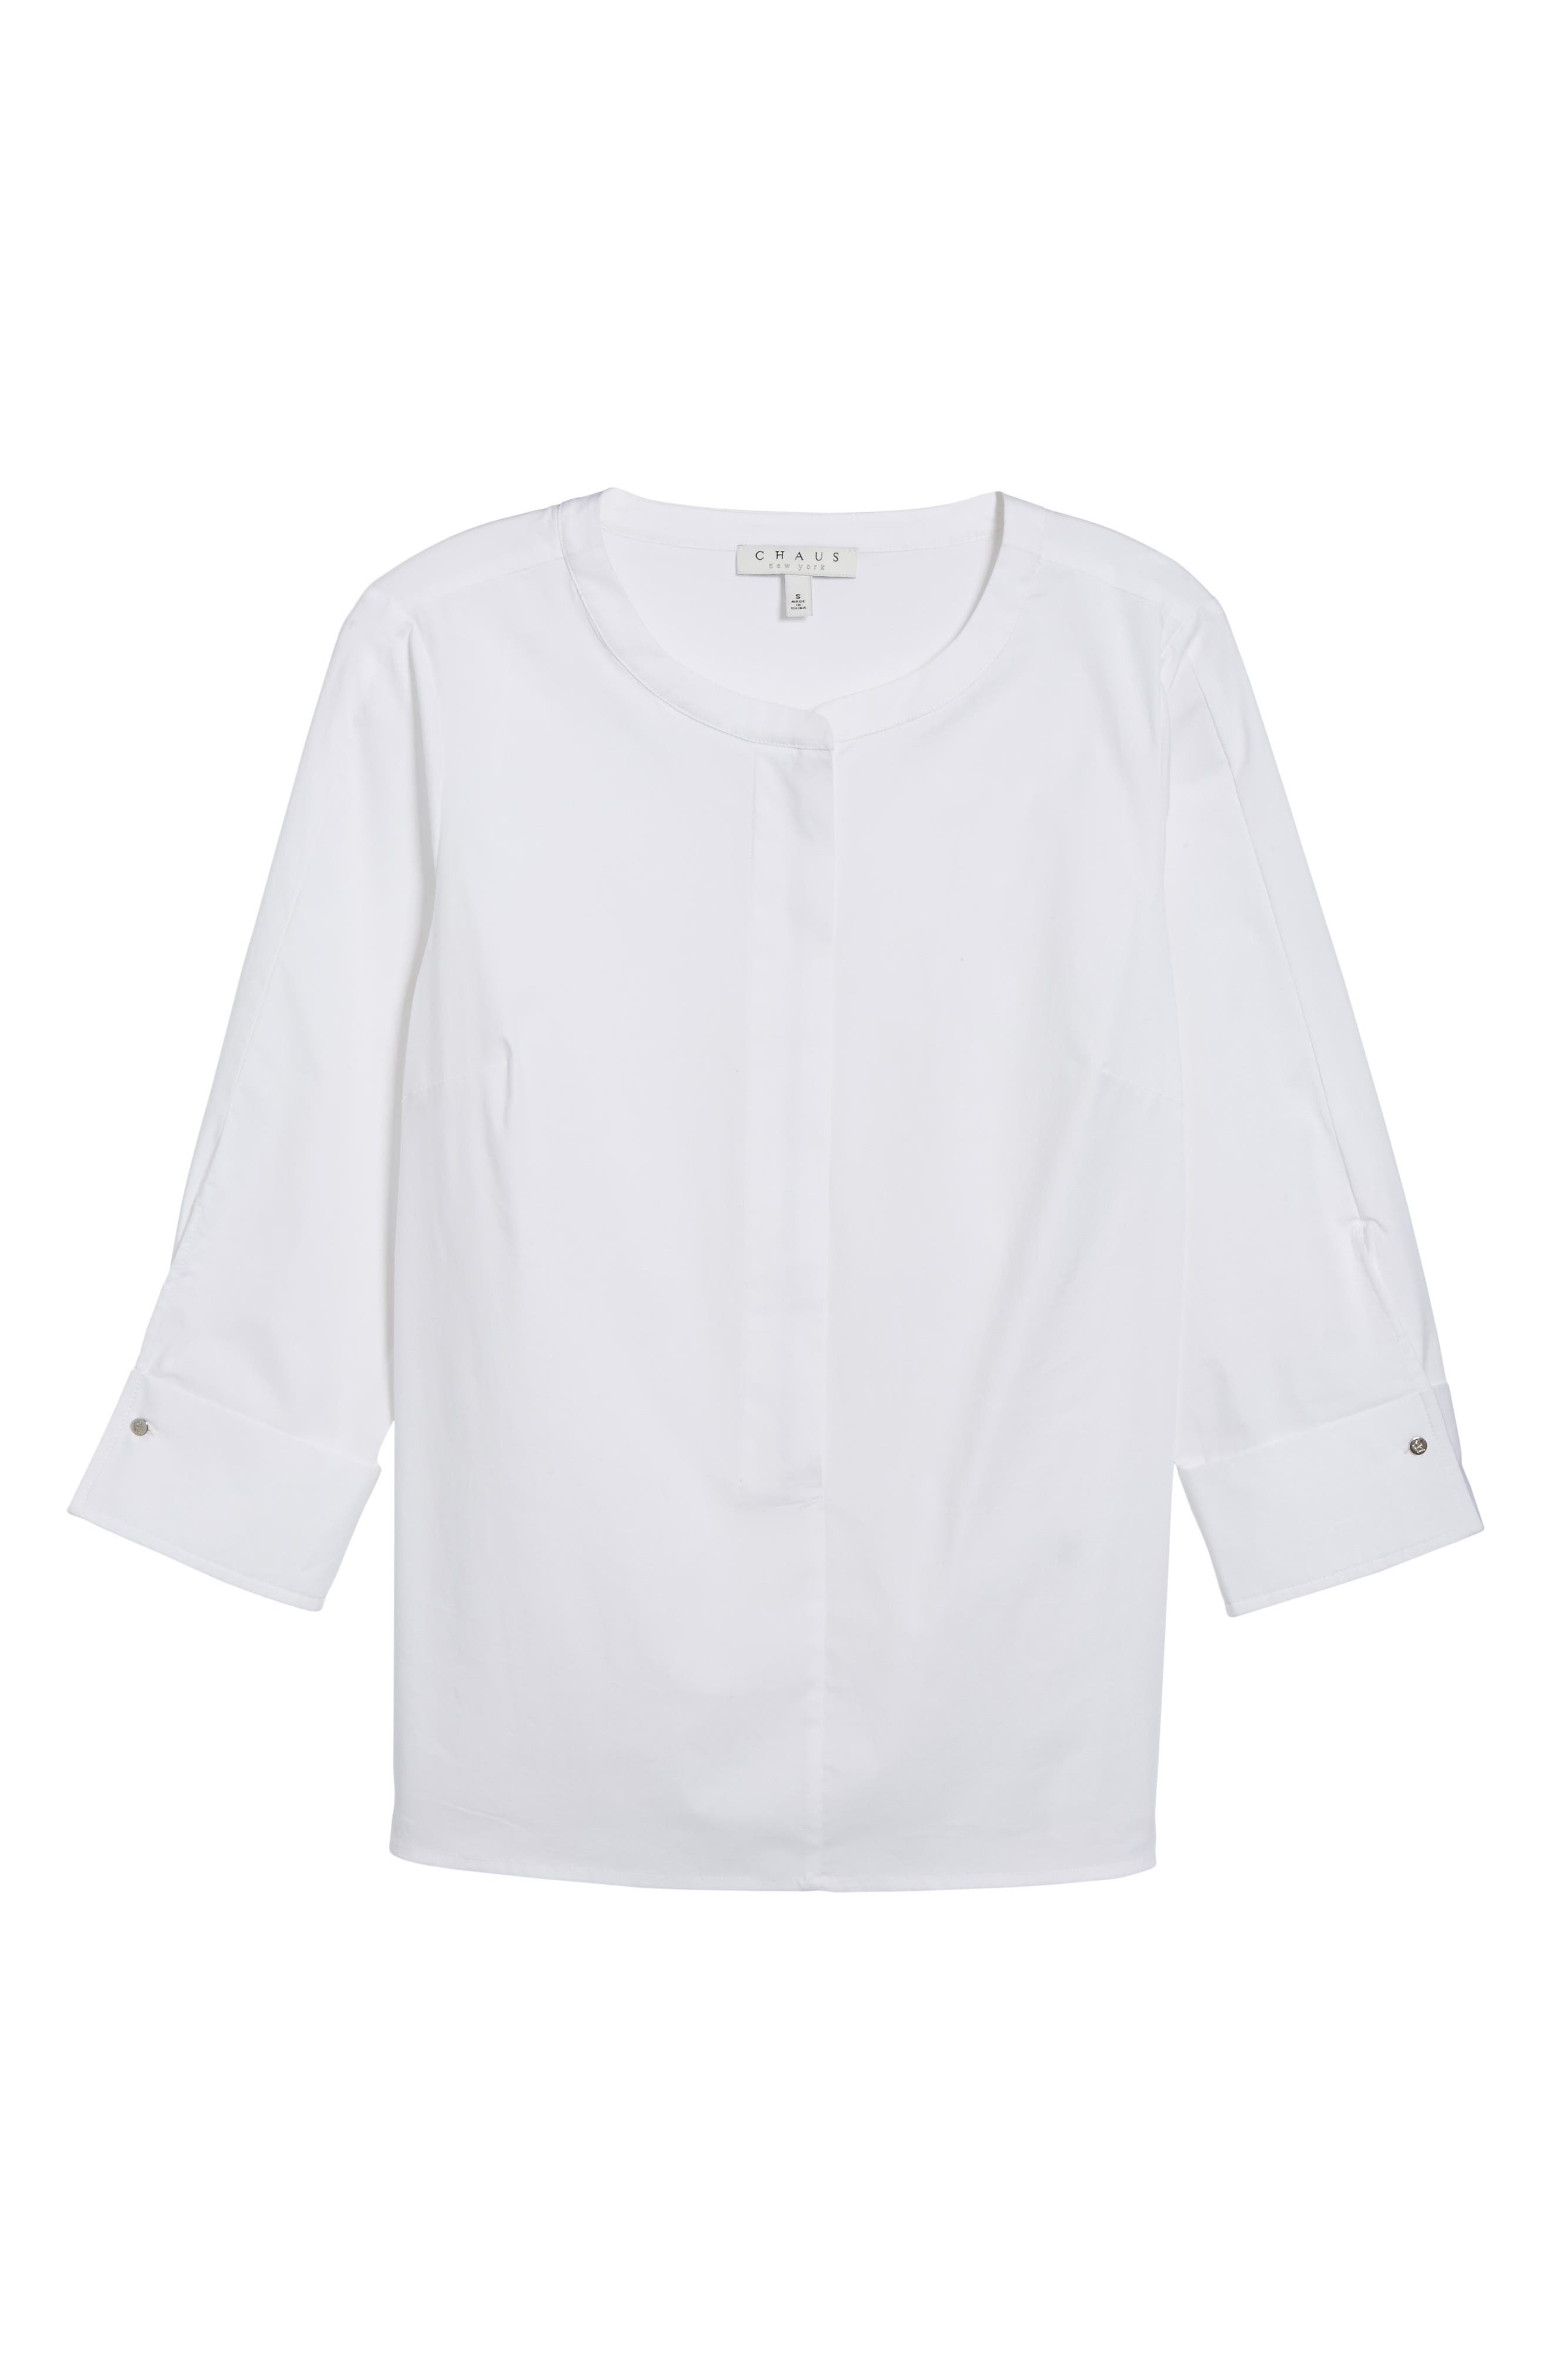 Poplin Blouse,                             Alternate thumbnail 6, color,                             145-Ultra White